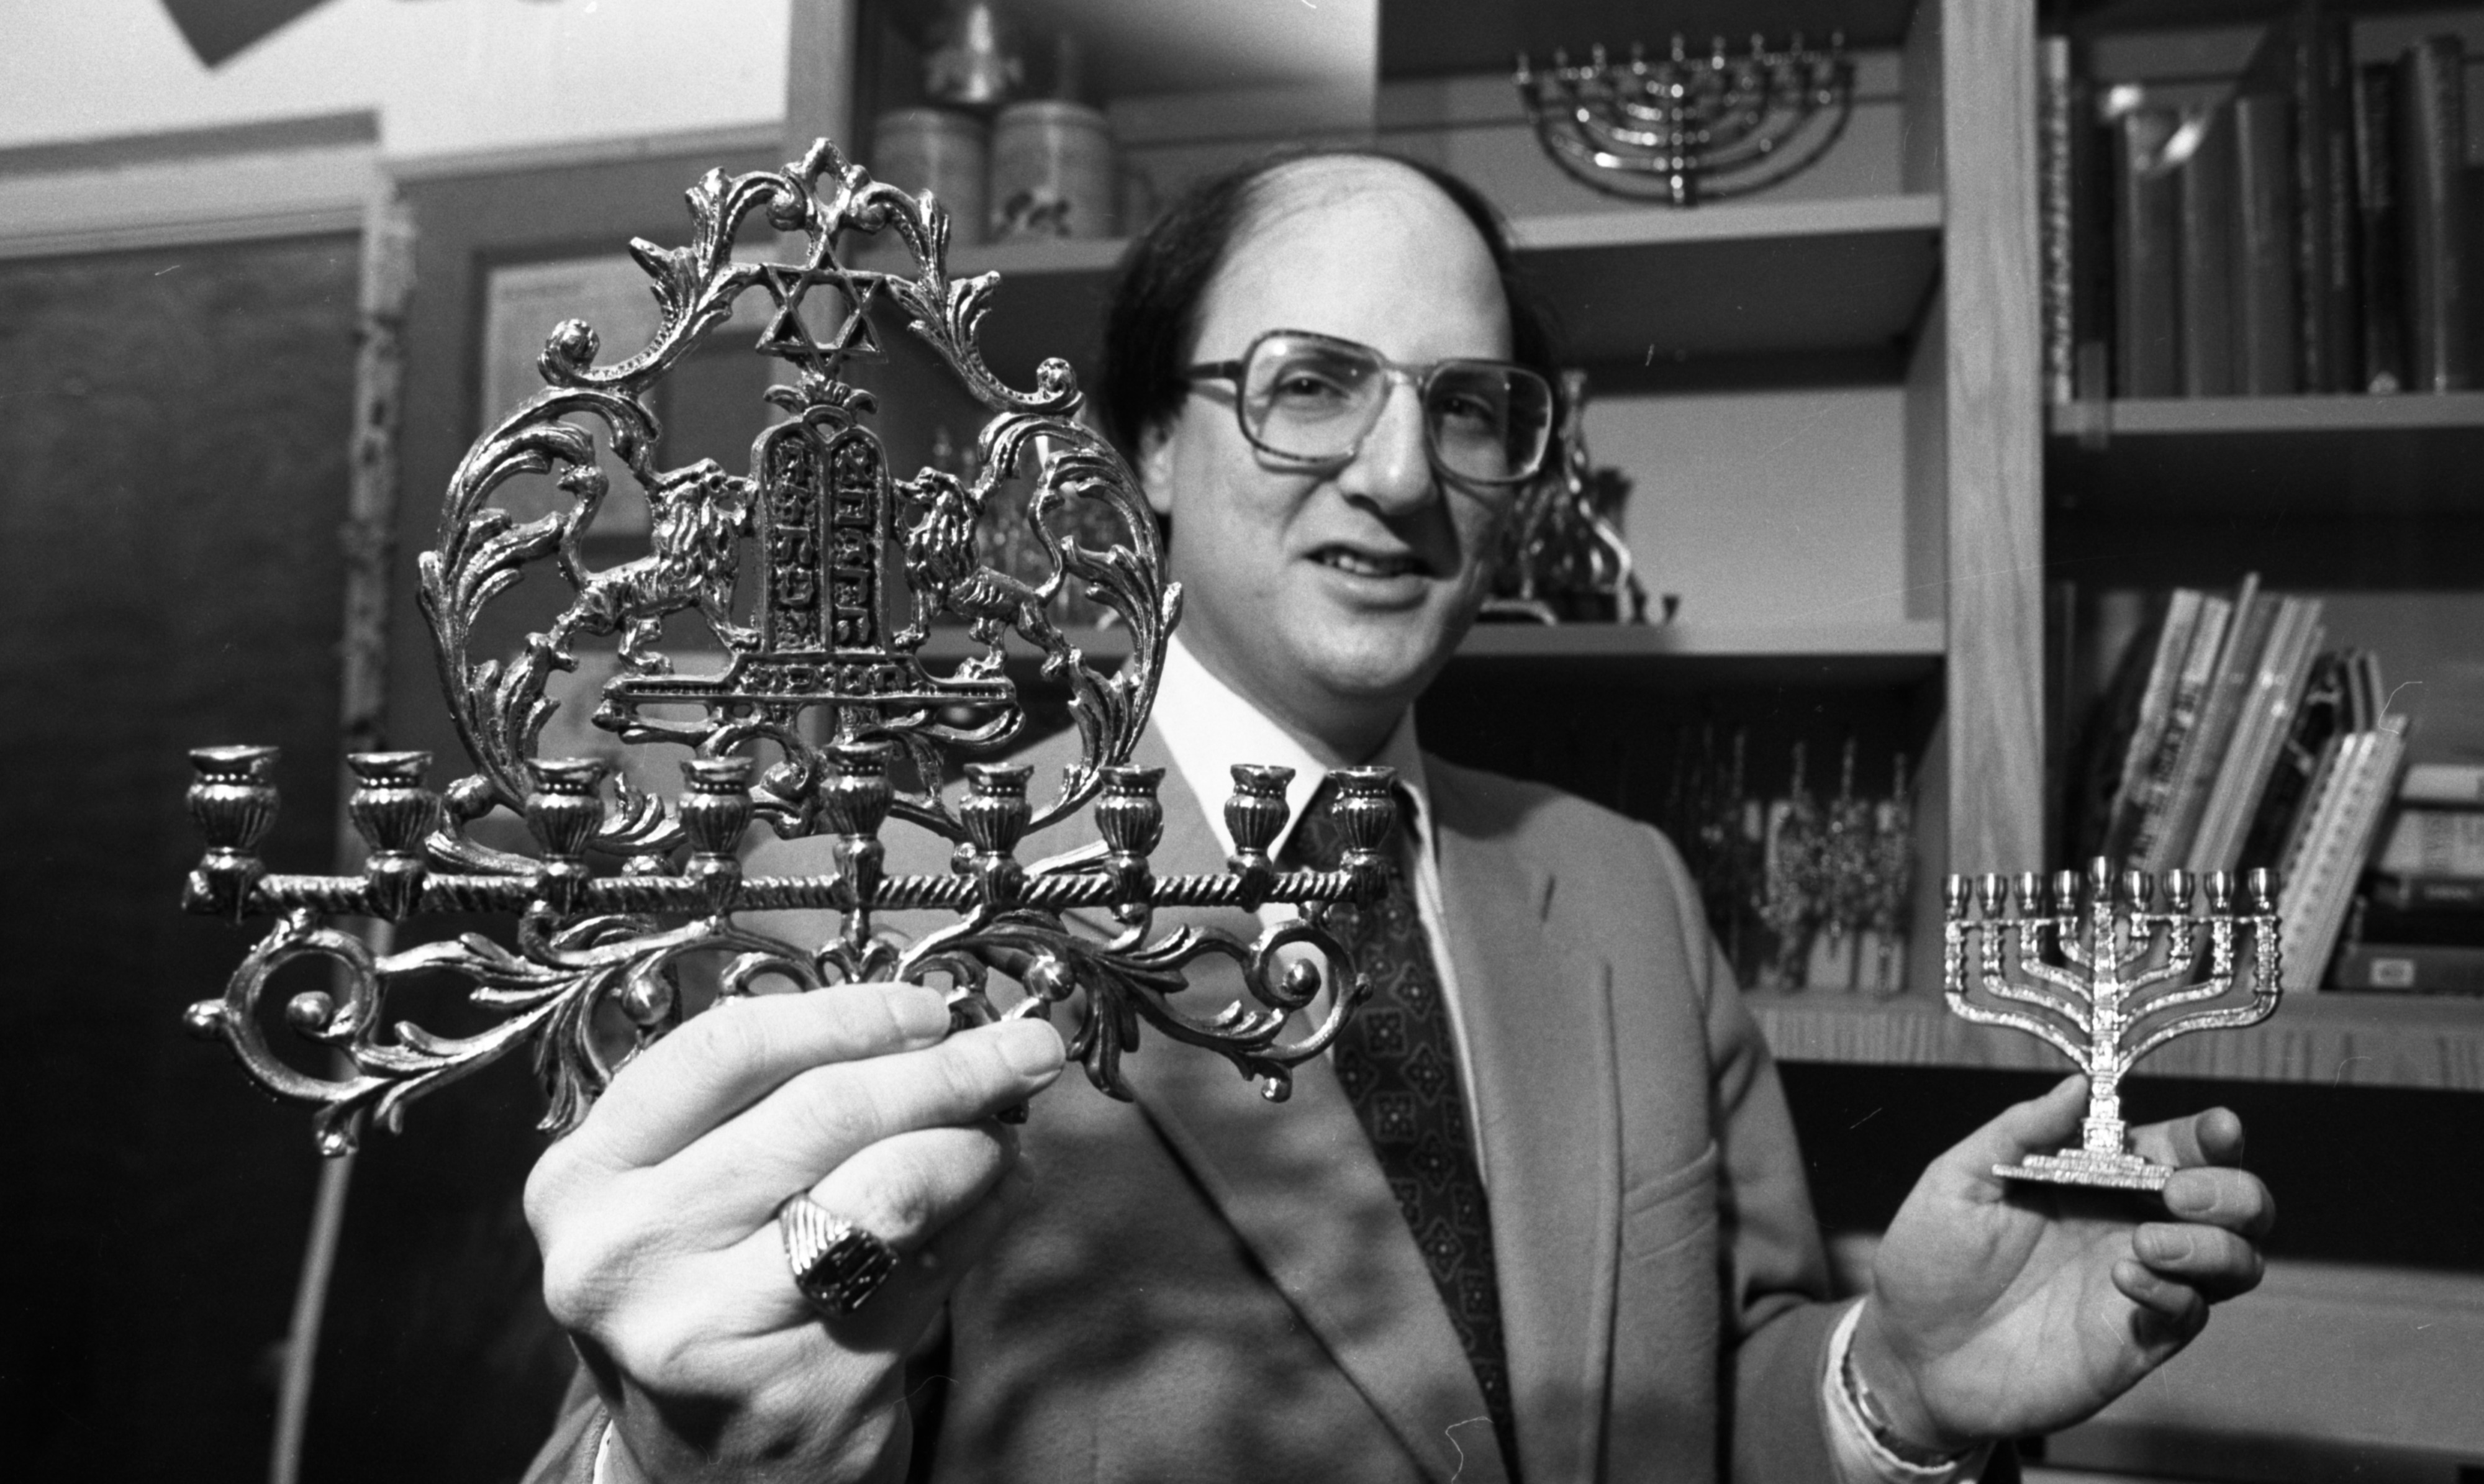 Rabbi Ralph Mecklenburger of Temple Beth Emeth Holding Menorahs Sold At Their Gift Shop, December 1981 image